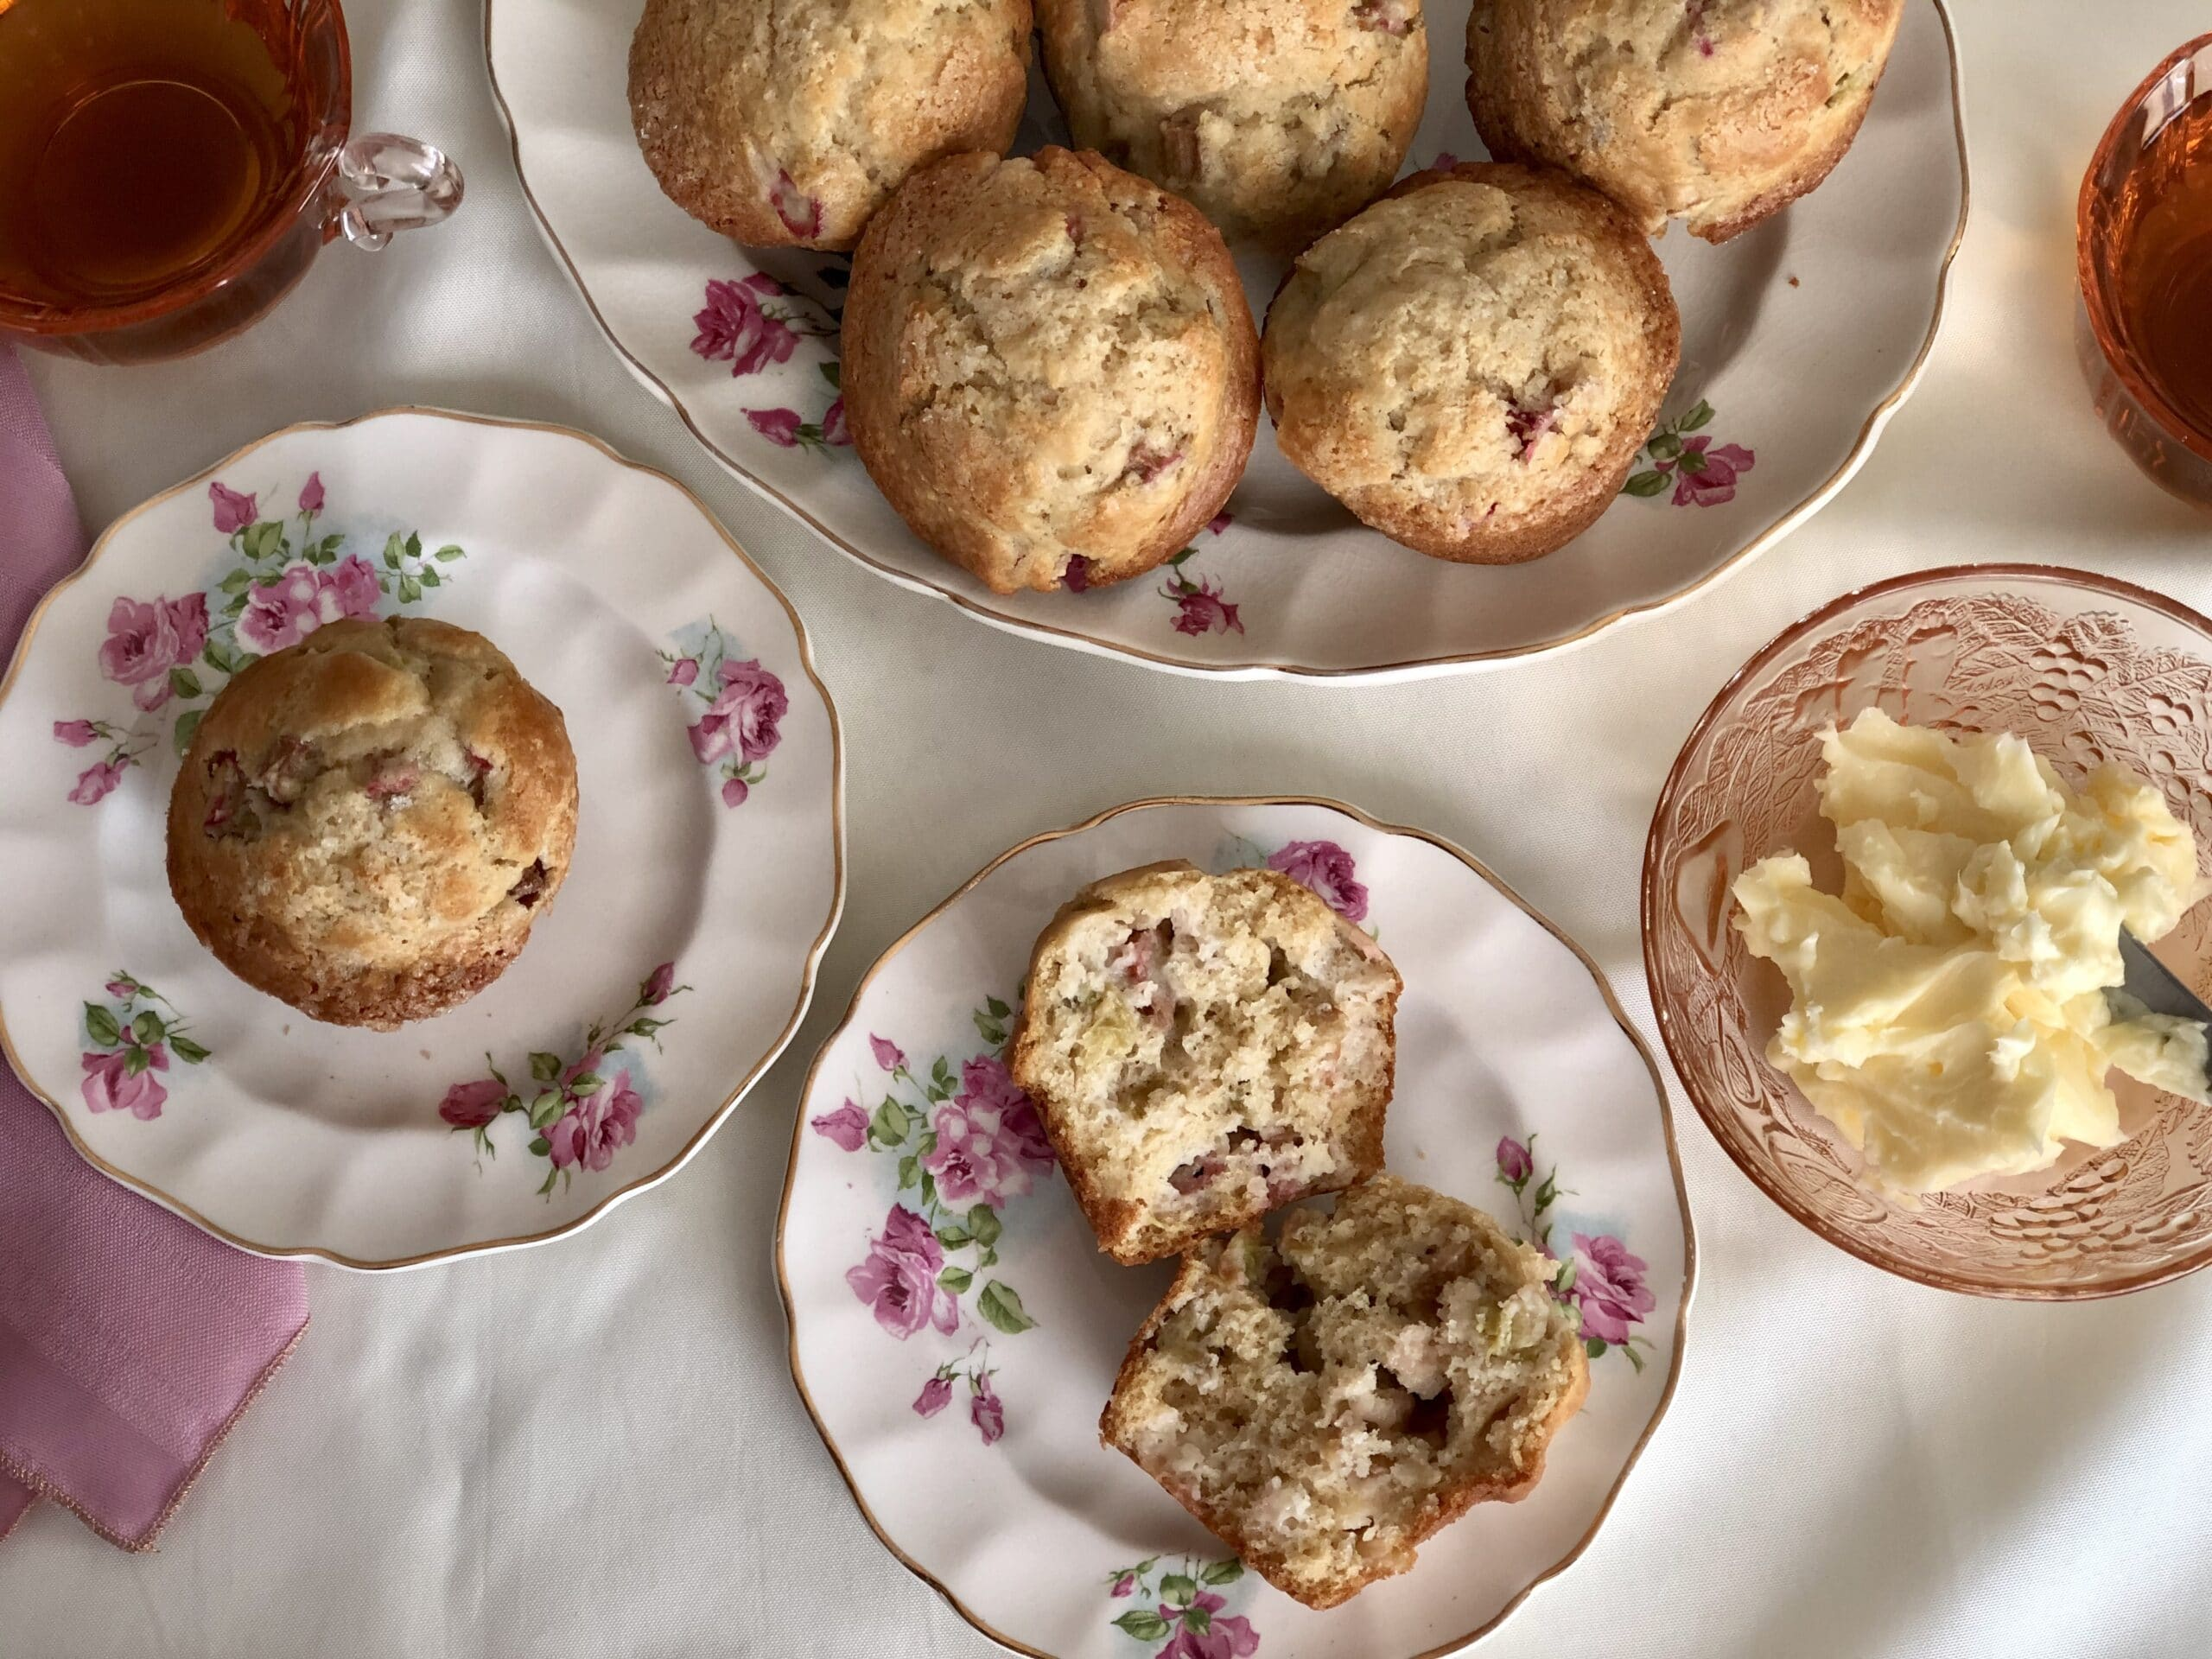 Anything Goes Fruit muffins are delicious